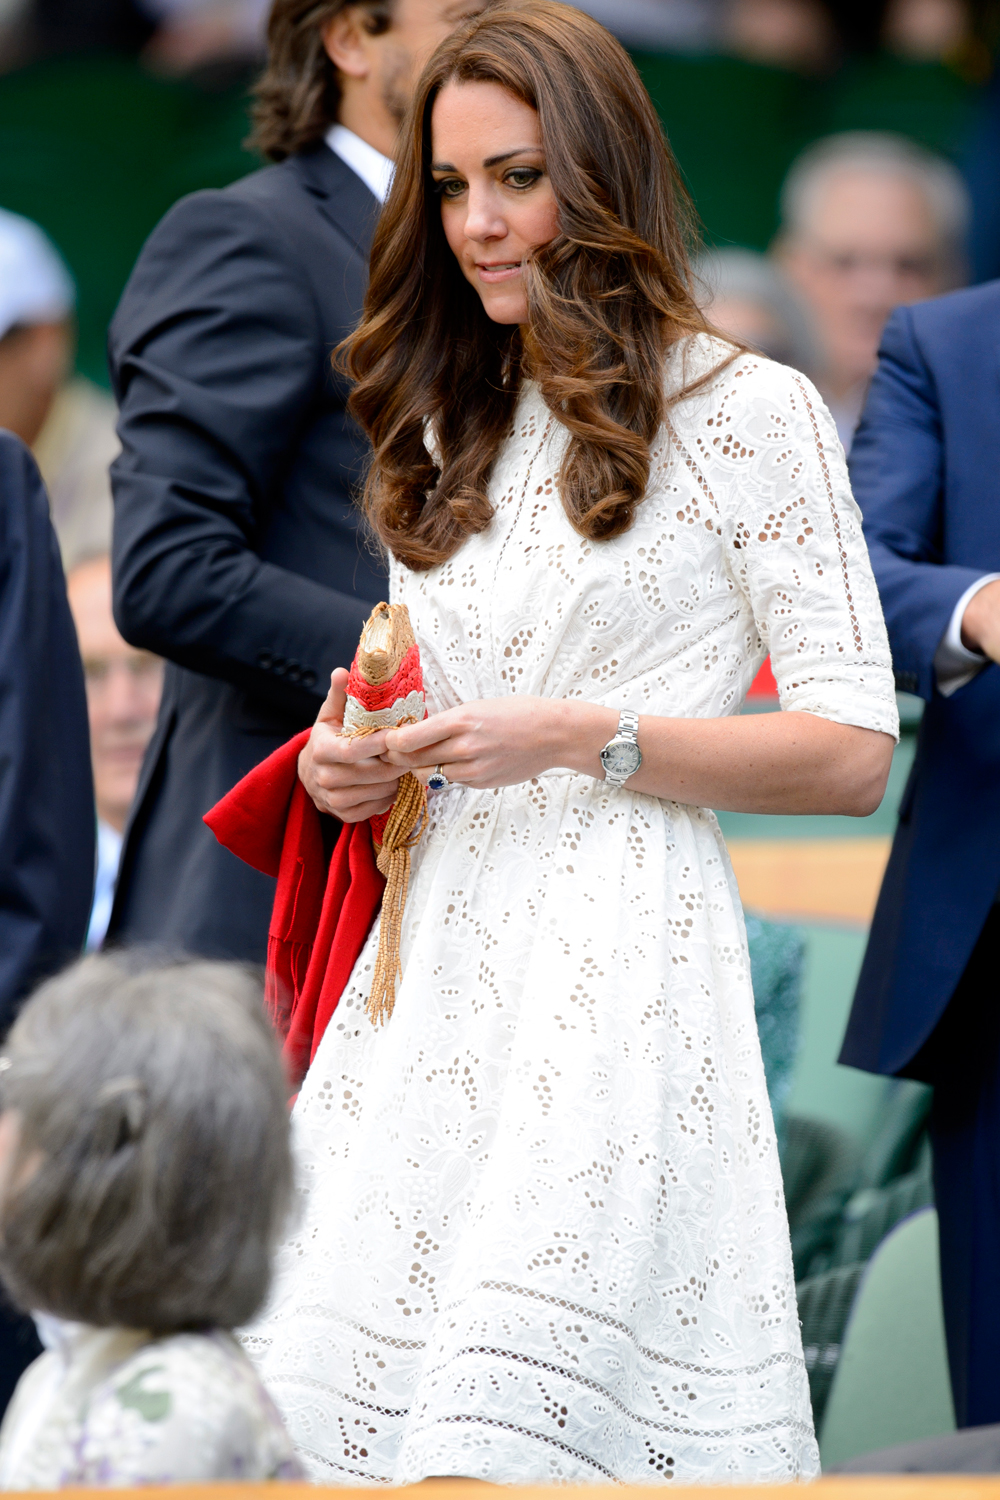 Kate Middleton And Prince William Arrive At Wimbledon 2014